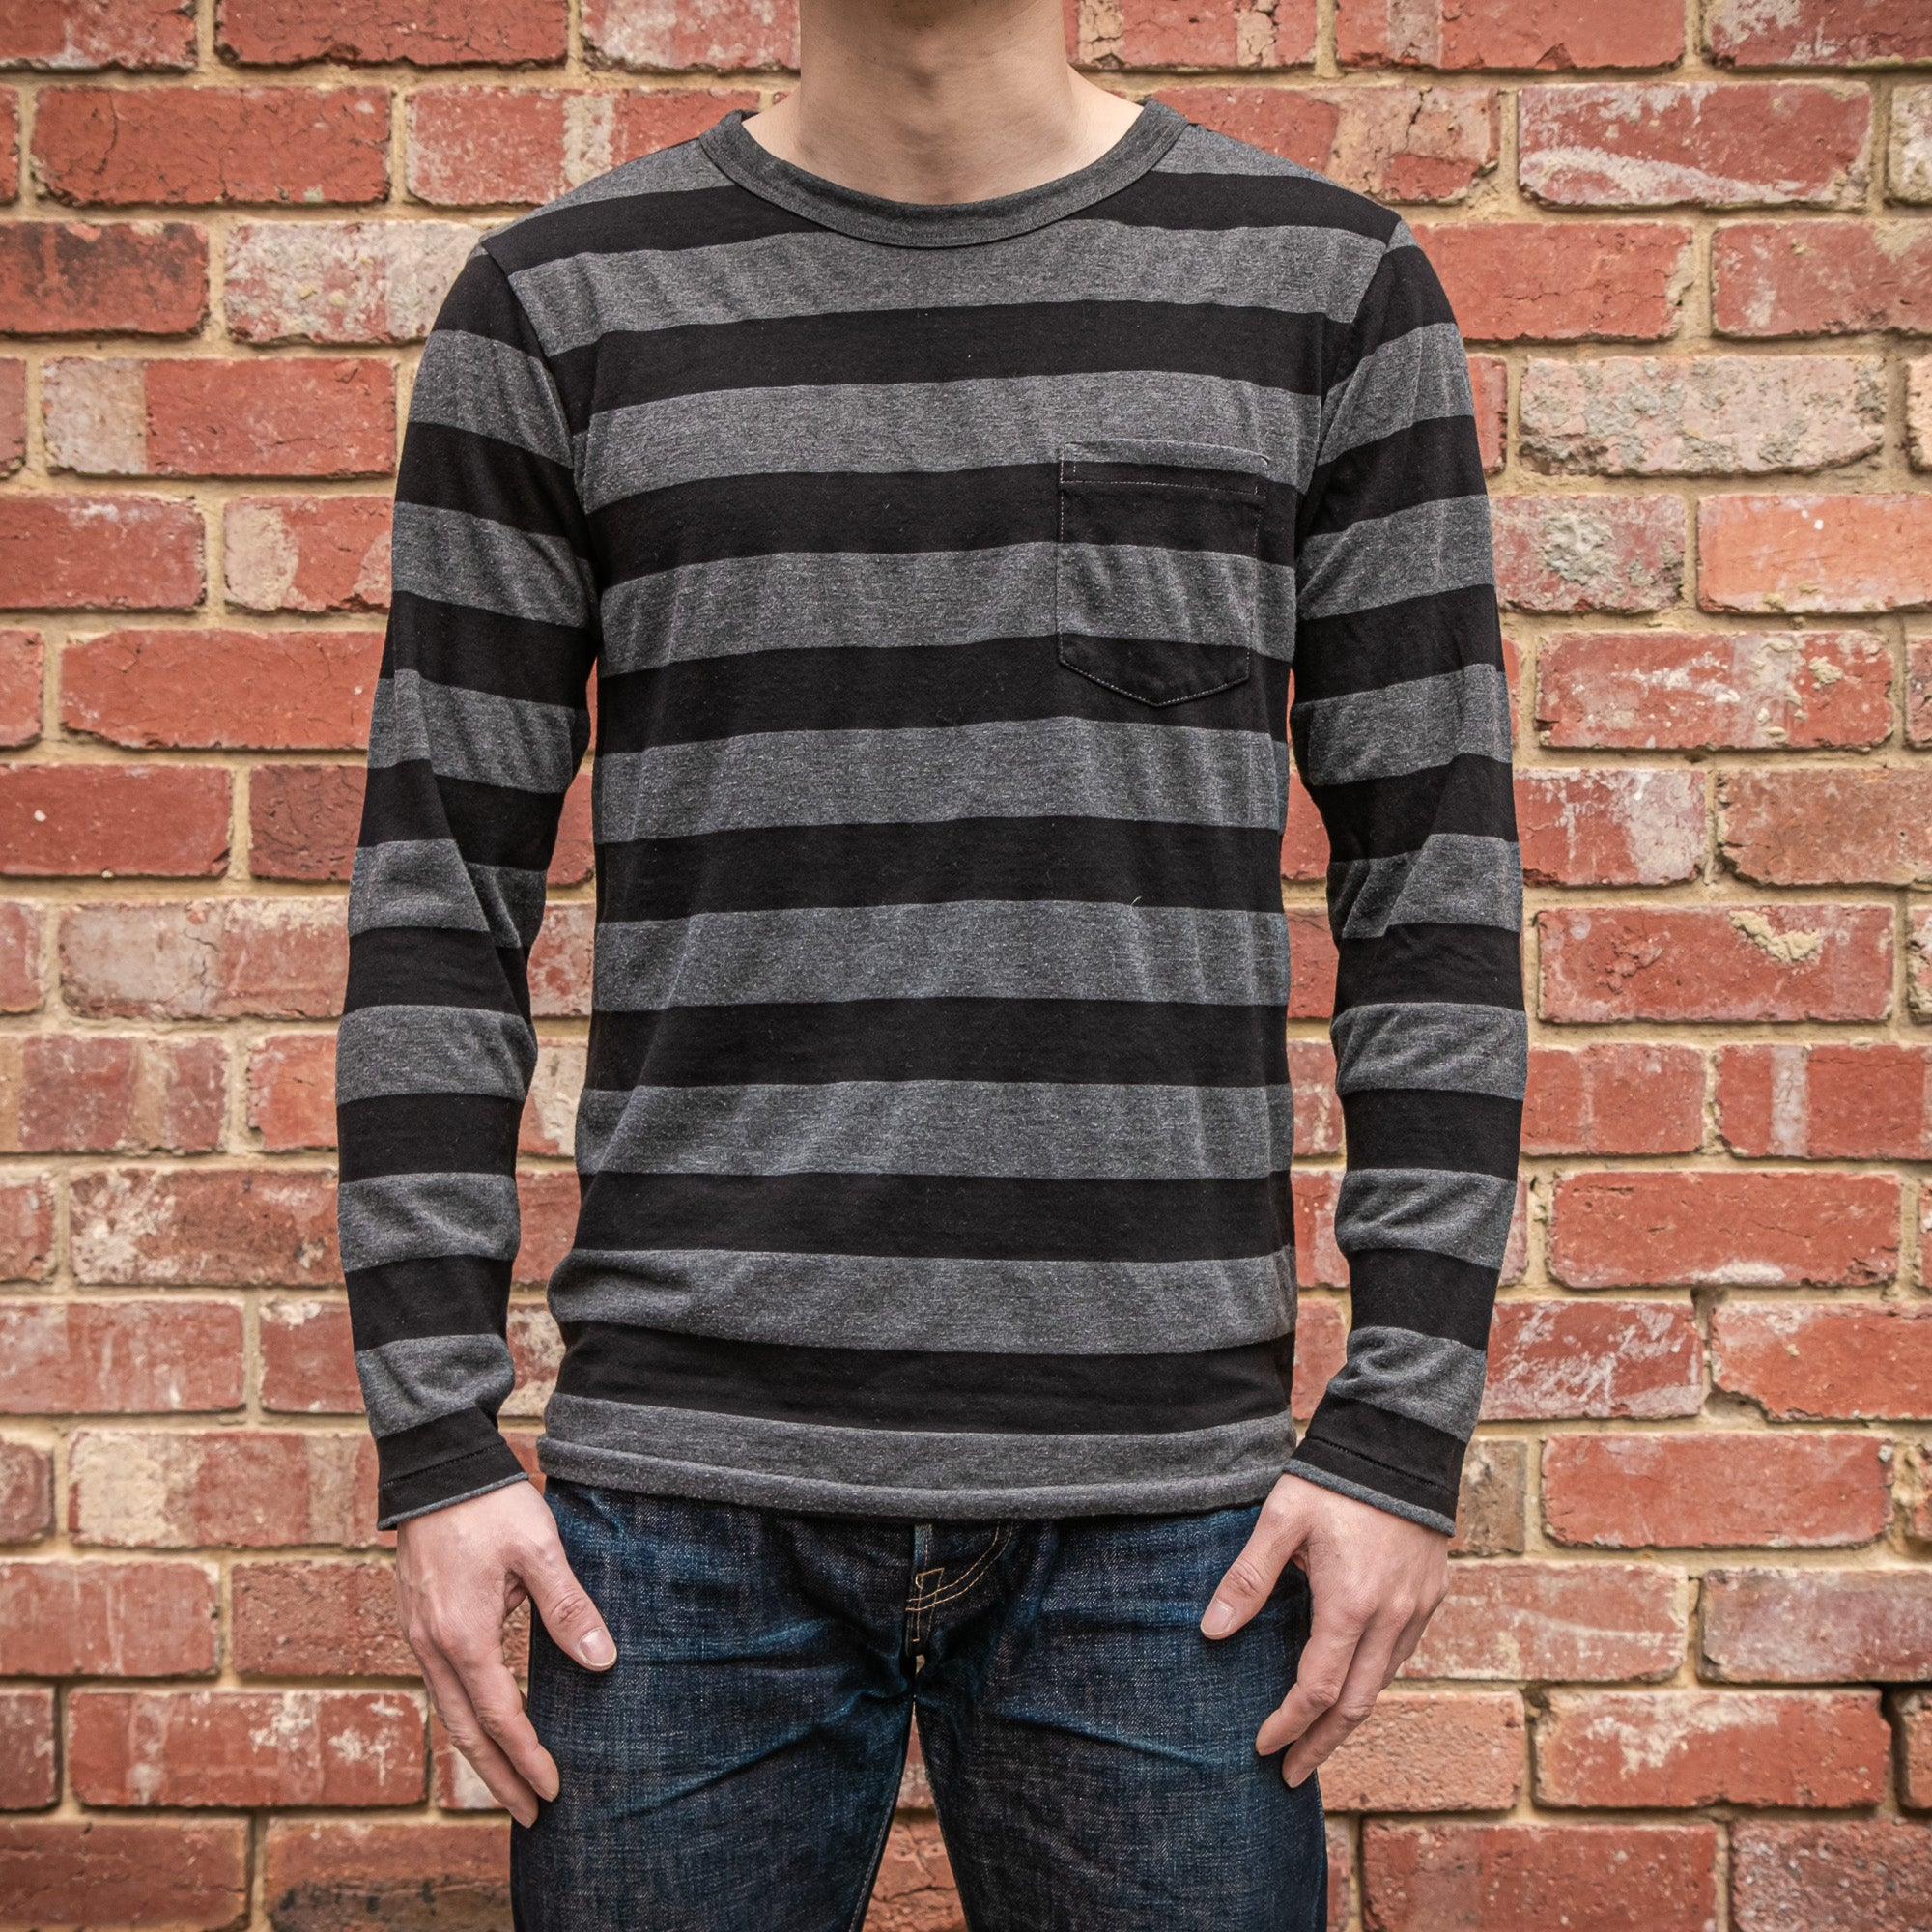 Velva Sheen - 30 stripe L/S pocket tee in Black and Charcoal